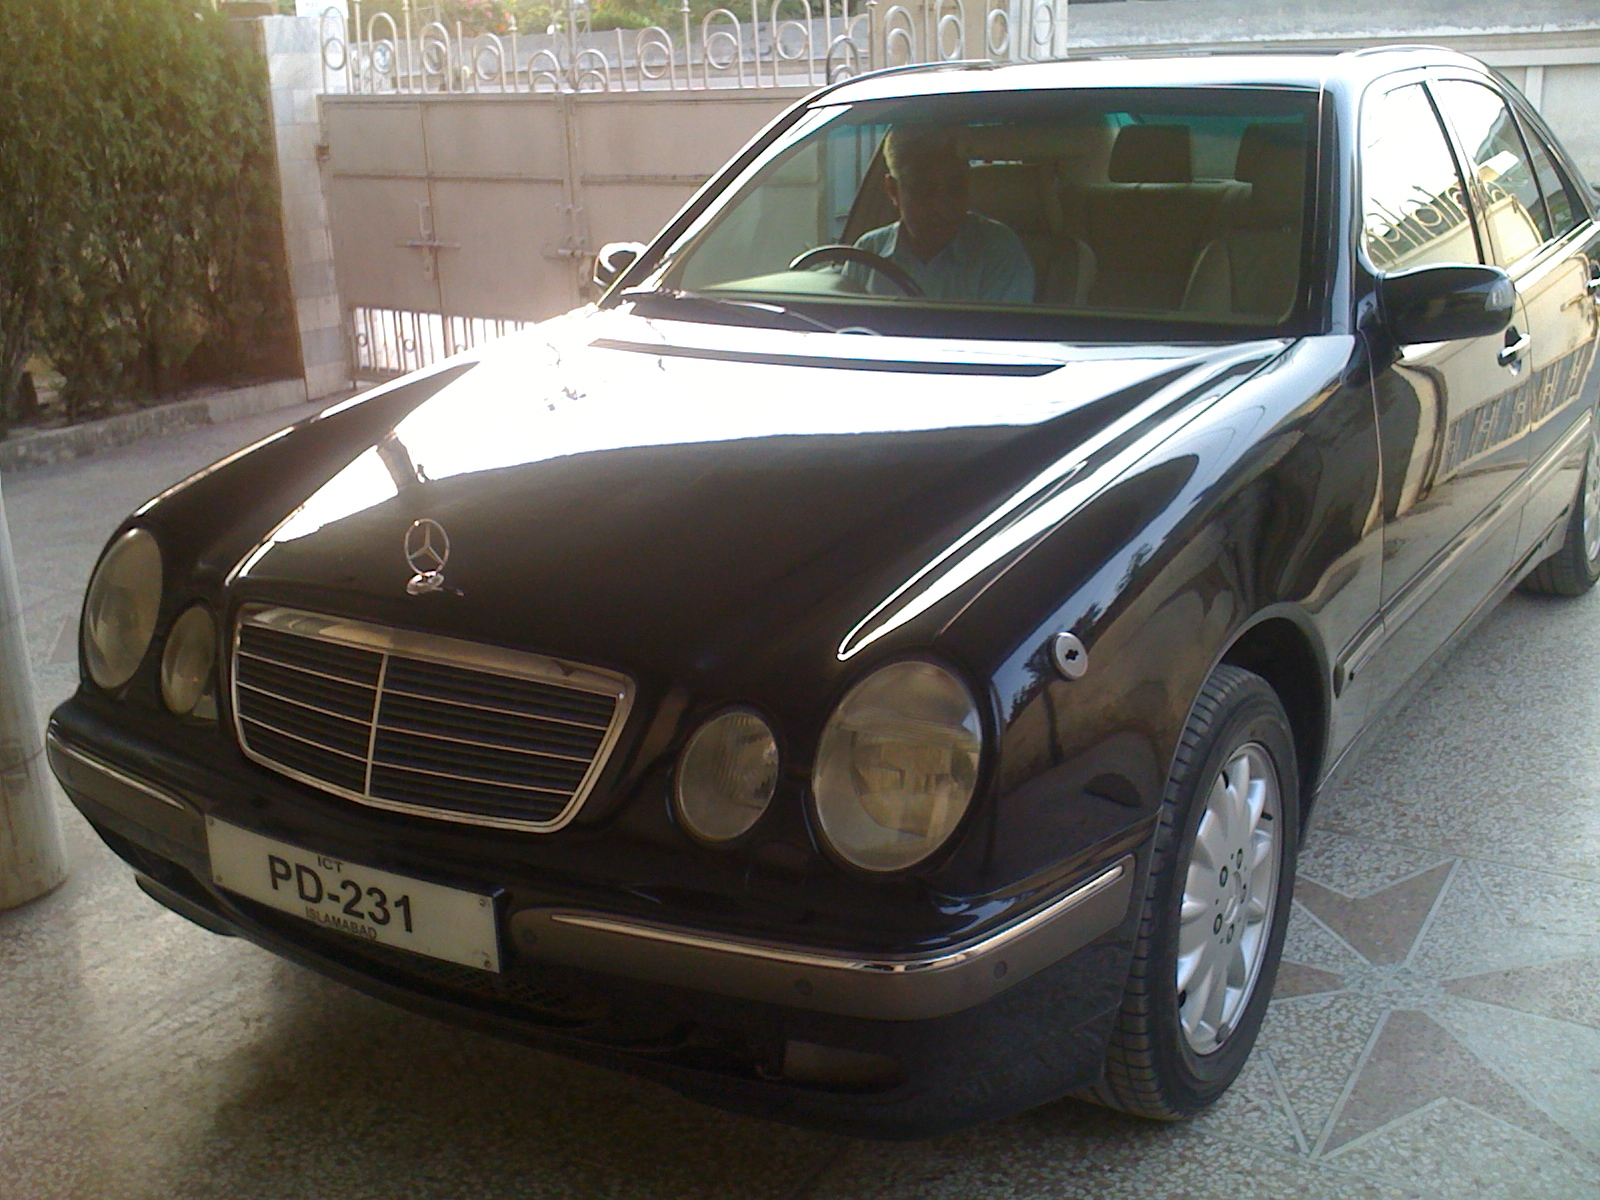 Mercedes benz e class 2001 of faisalhanif13 member ride for Mercedes benz membership